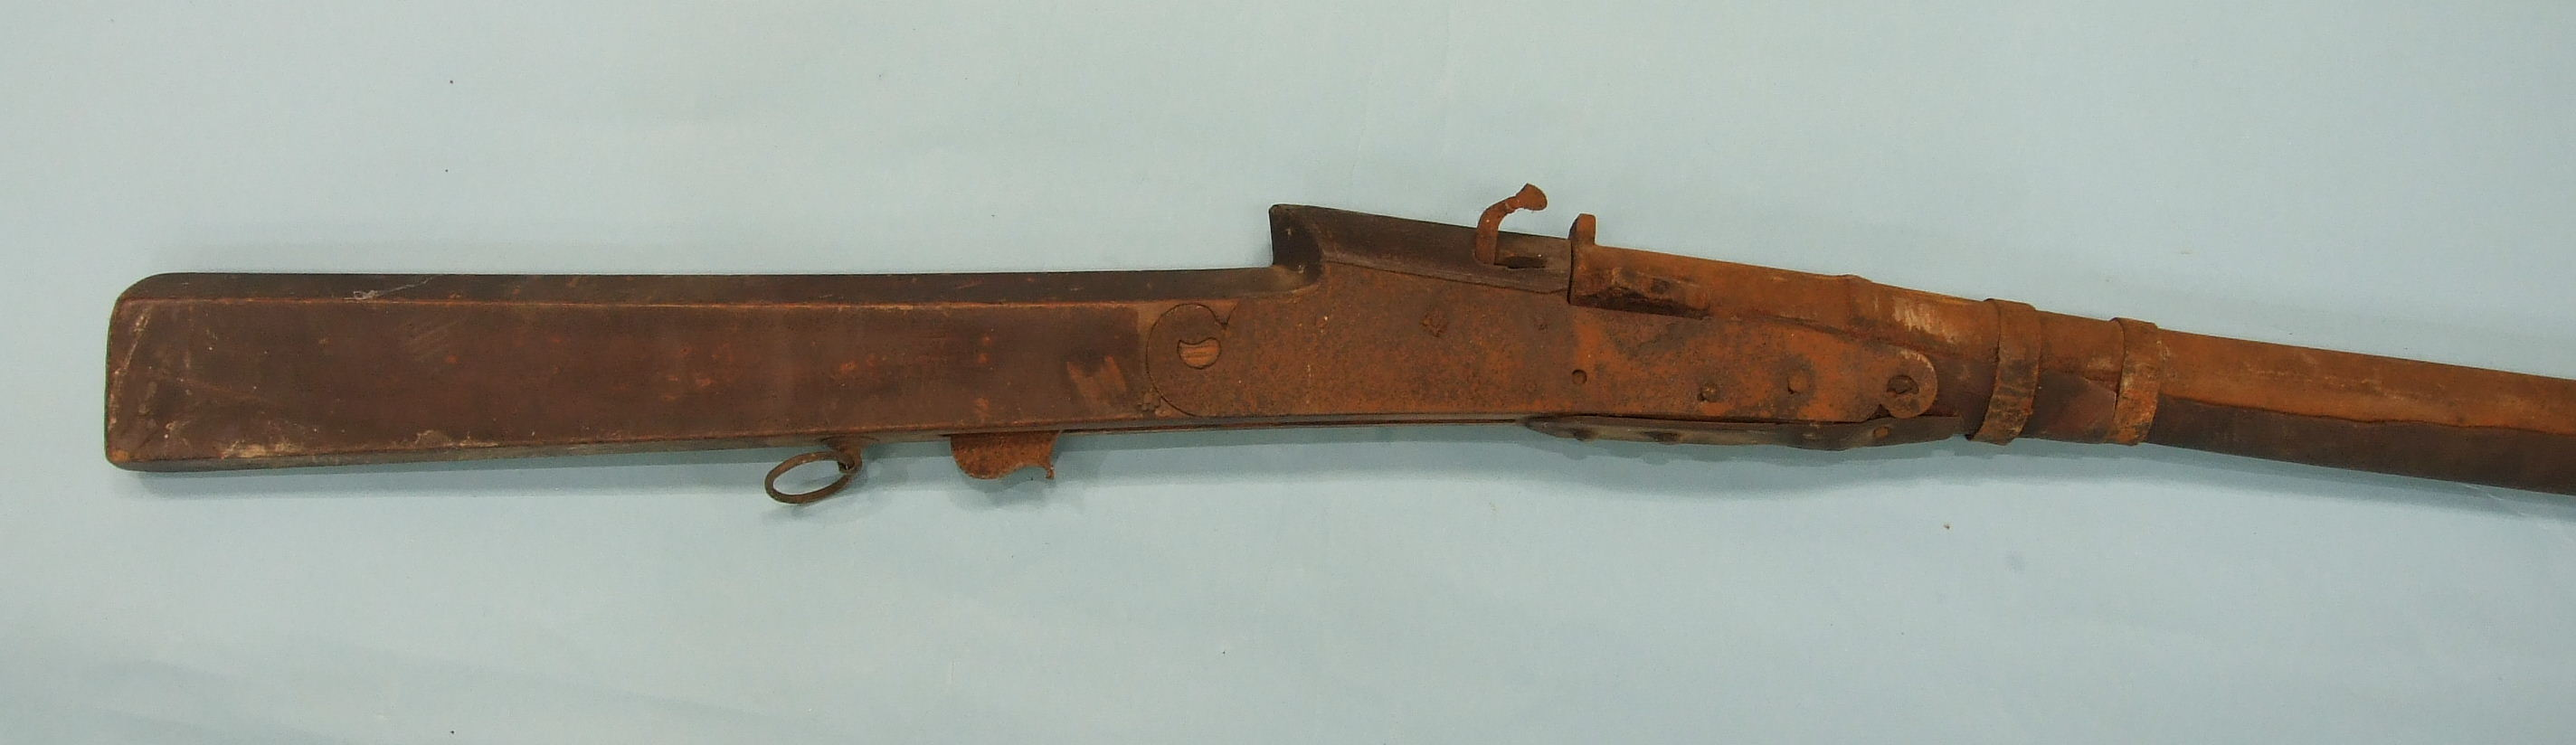 Lot 230 - A percussion box-lock pocket pistol and a match-lock rifle, (both in poor condition), (2).